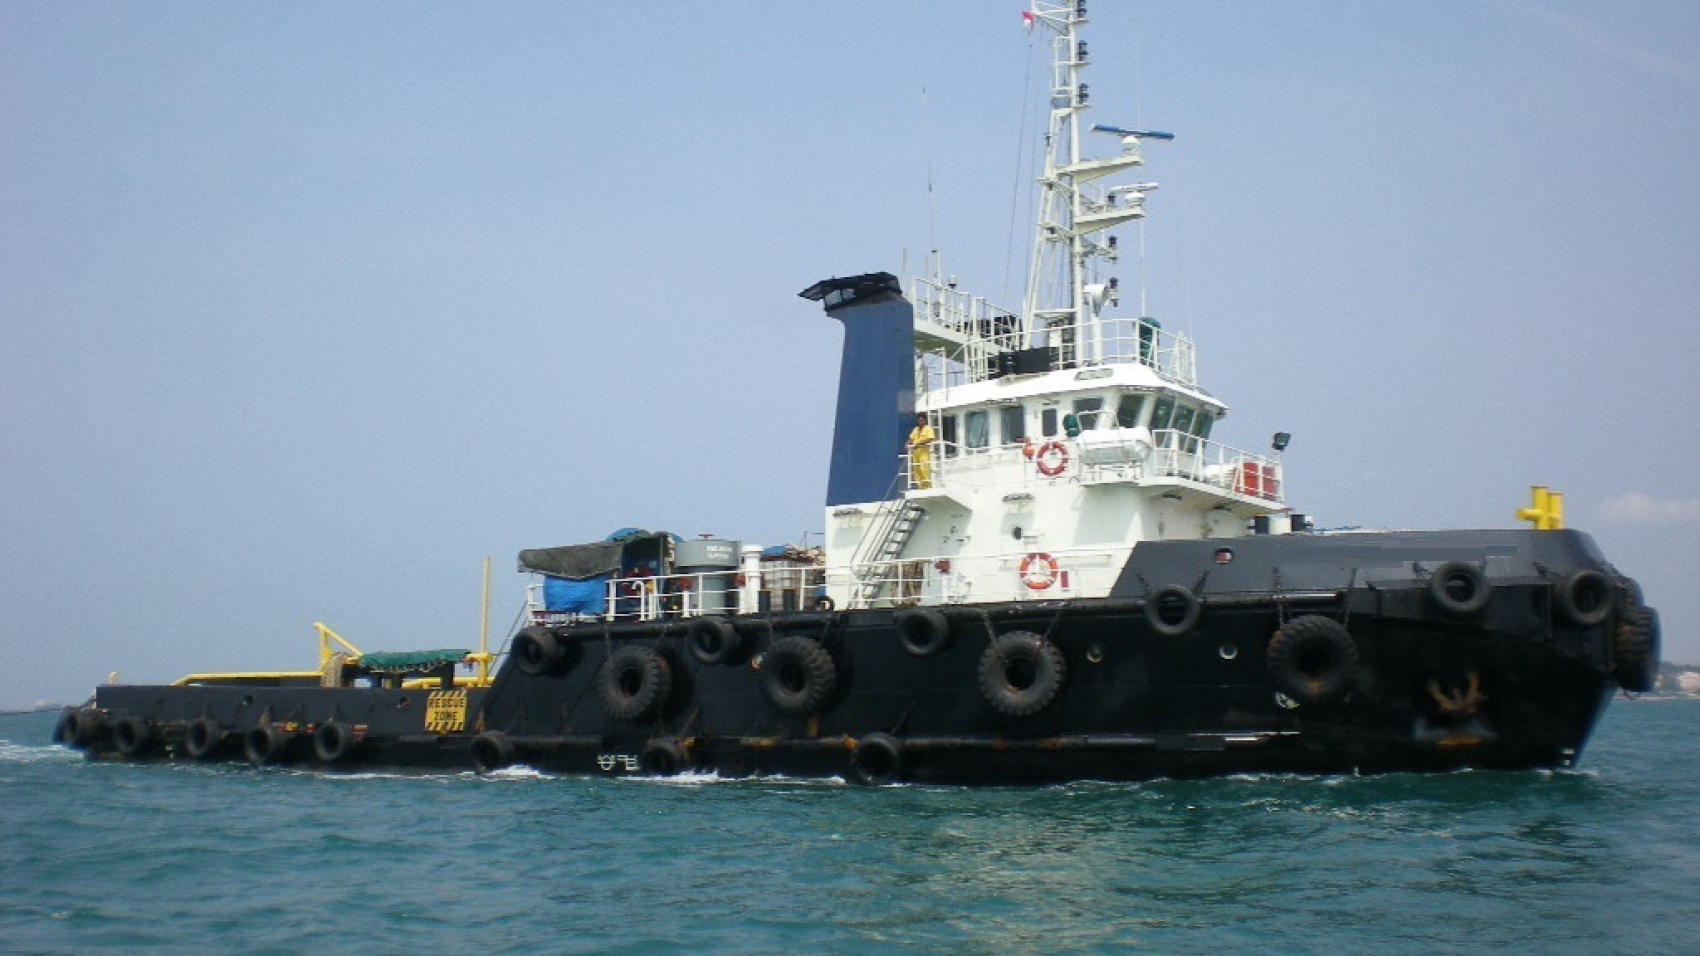 40m 5000Bhp AHT - Utility Tug for Sale or Charter